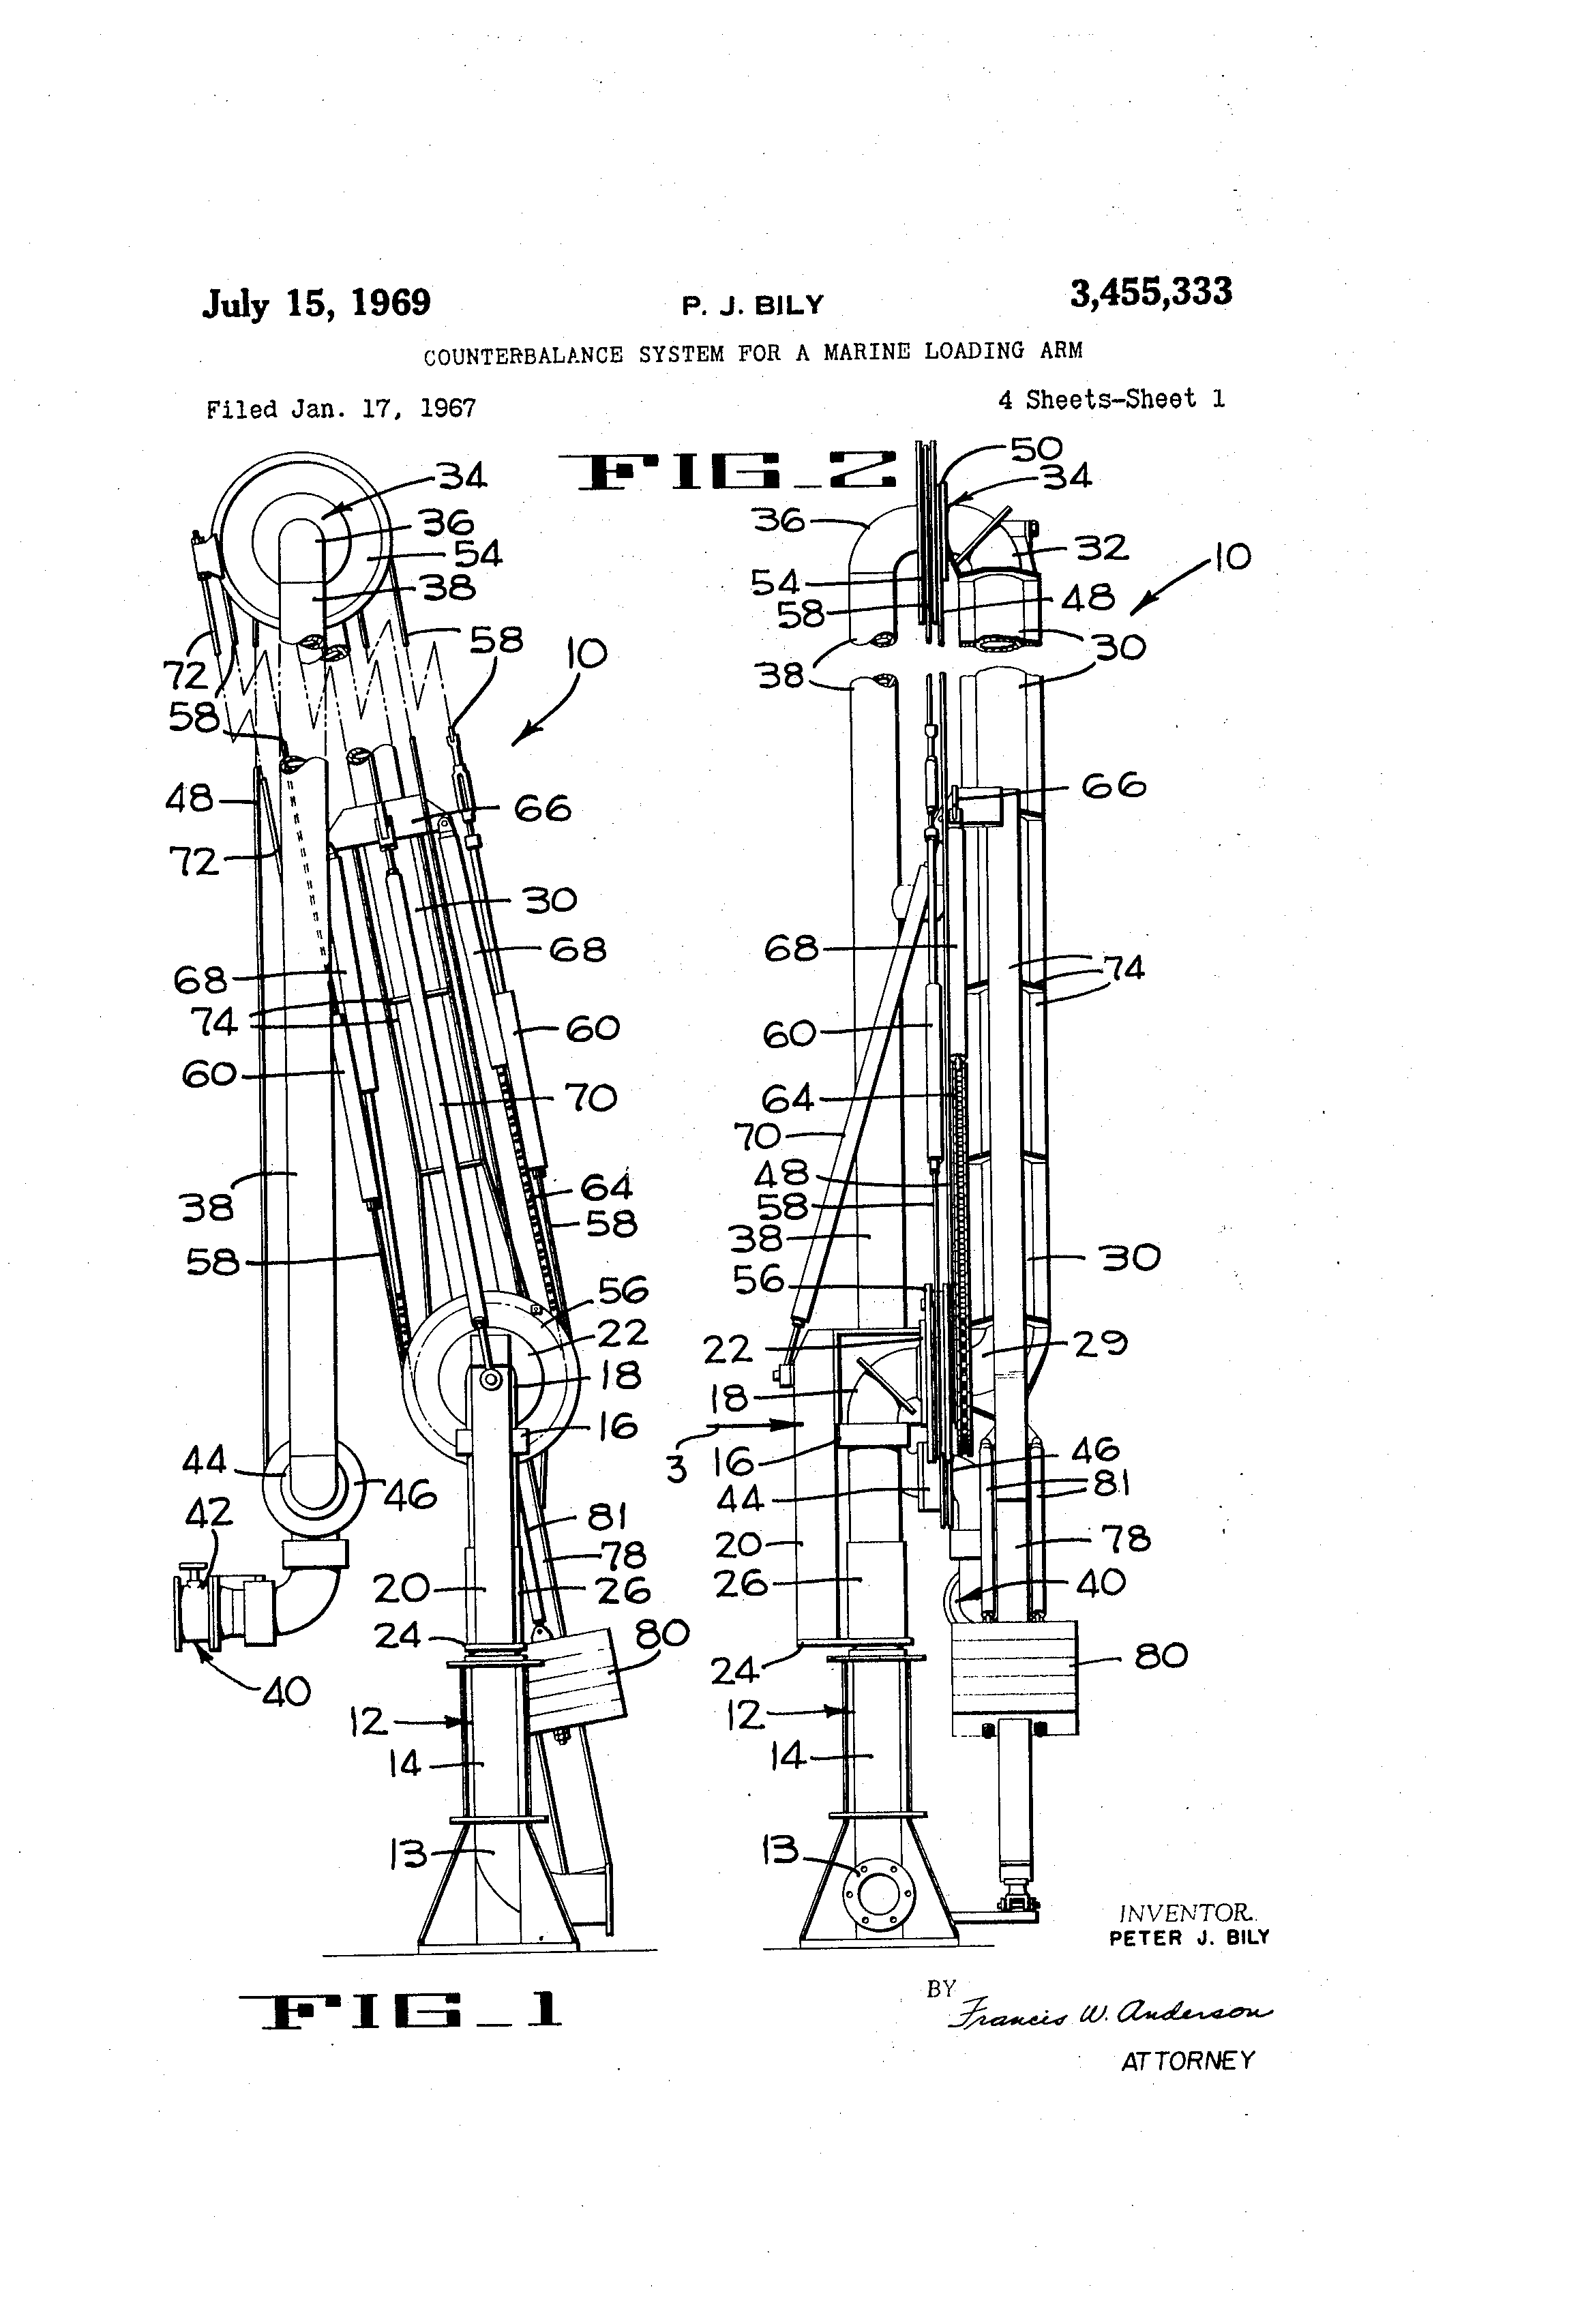 Hydraulic Loading Arms : Patent us counterbalance system for a marine